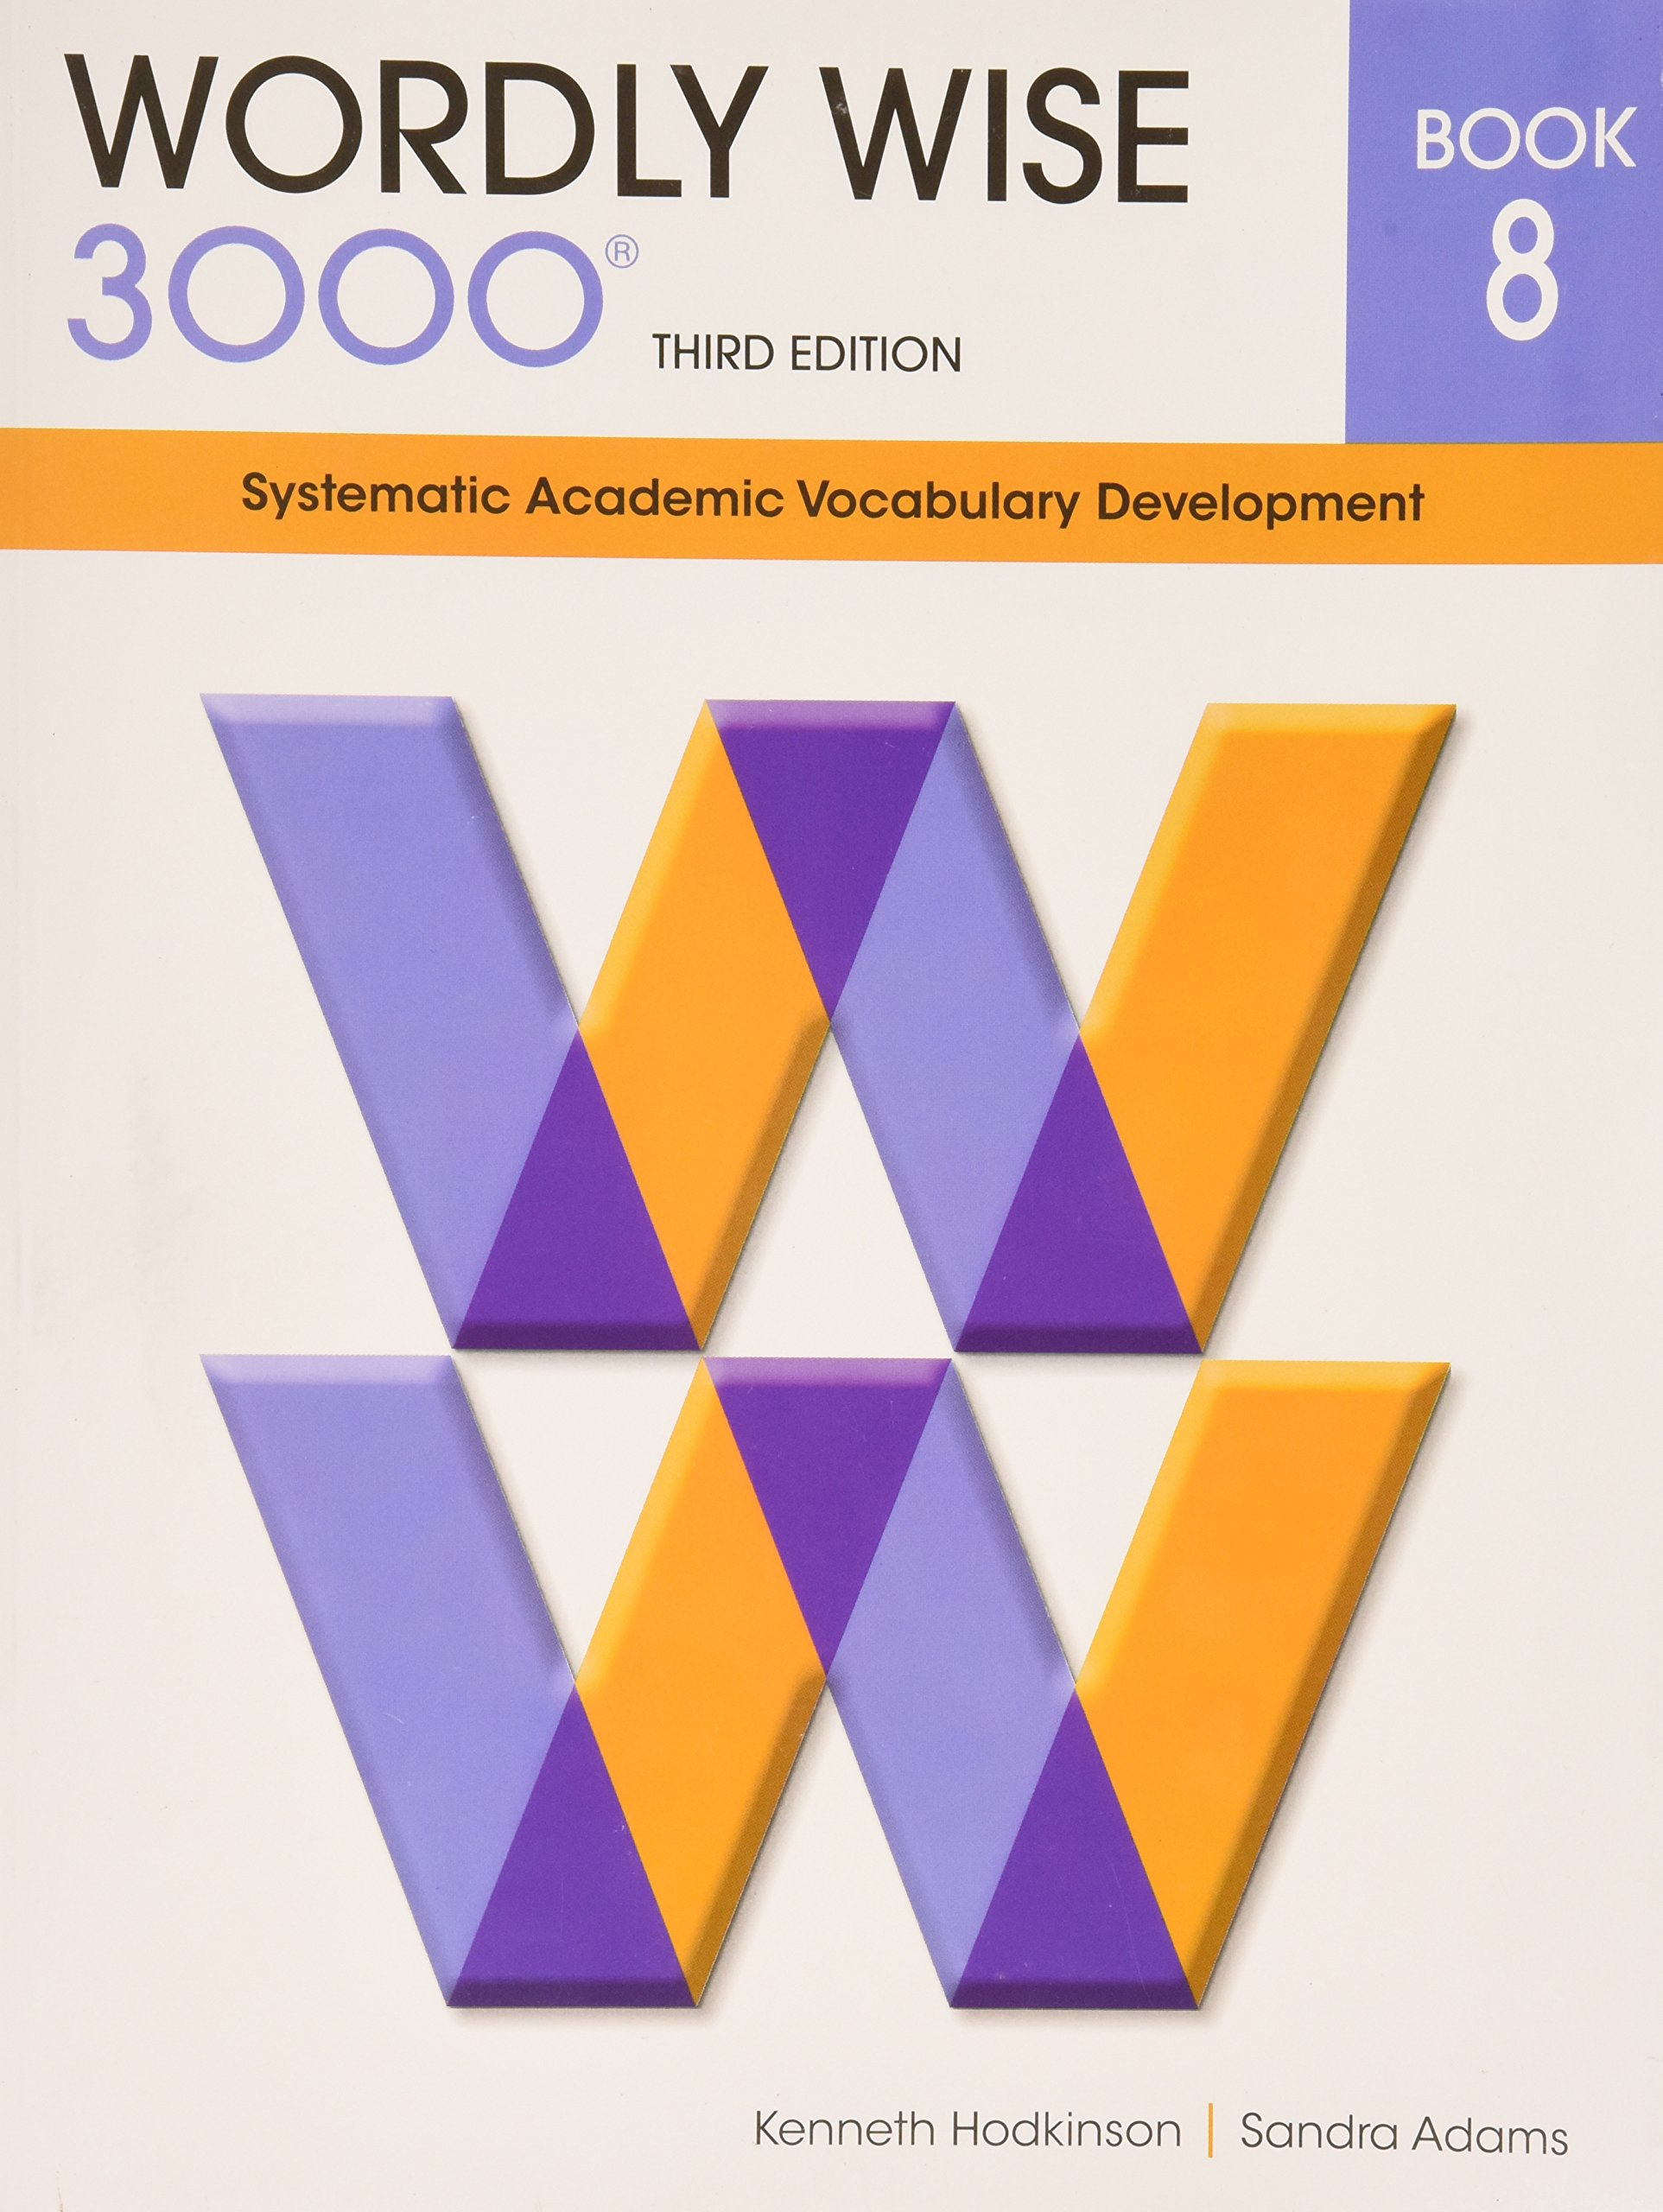 Wordly Wise 3000 Book 8: Systematic Academic Vocabulary Development:  Kenneth Hodkinson, Sandra Adams: 9780838876084: Amazon.com: Books